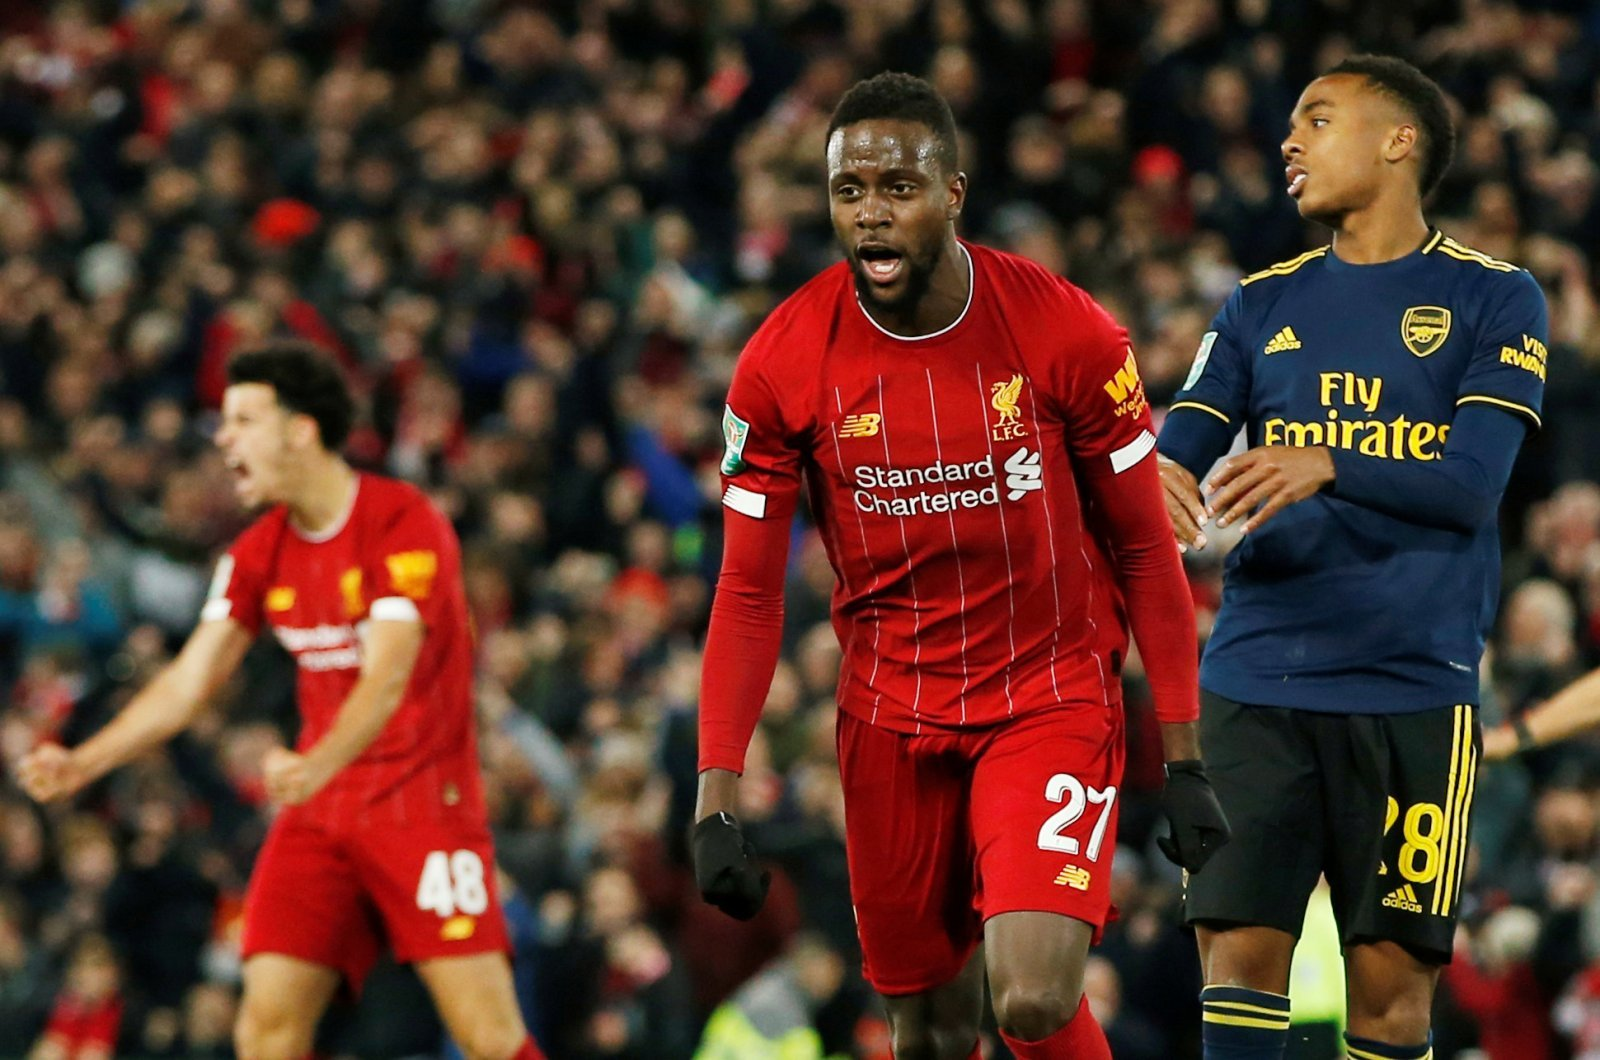 Liverpool: Fans cannot comprehend confusing relationship with Divock Origi